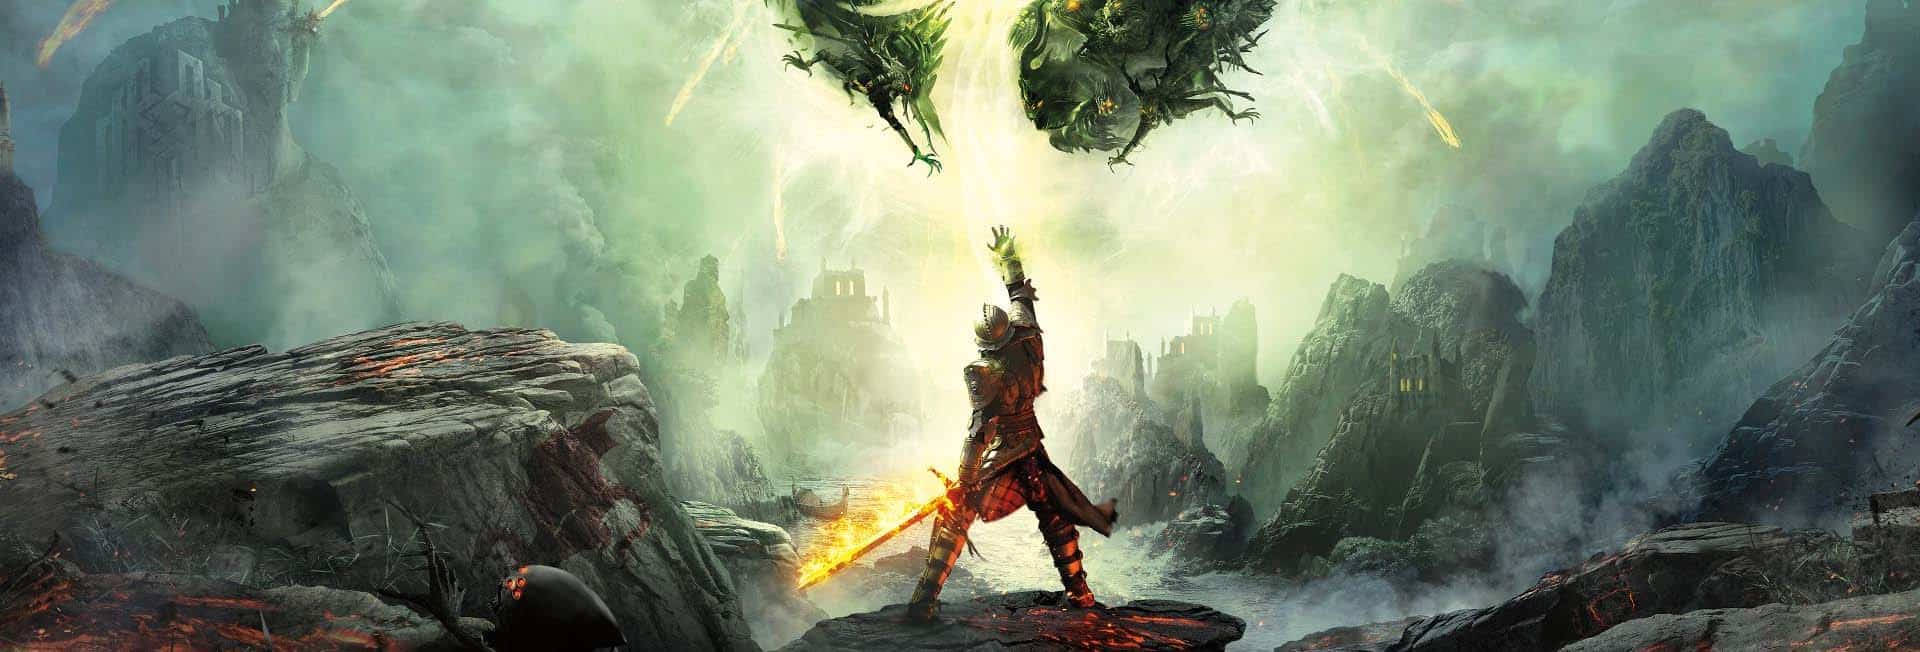 Dragon Age 4 Release Date, News and Rumors